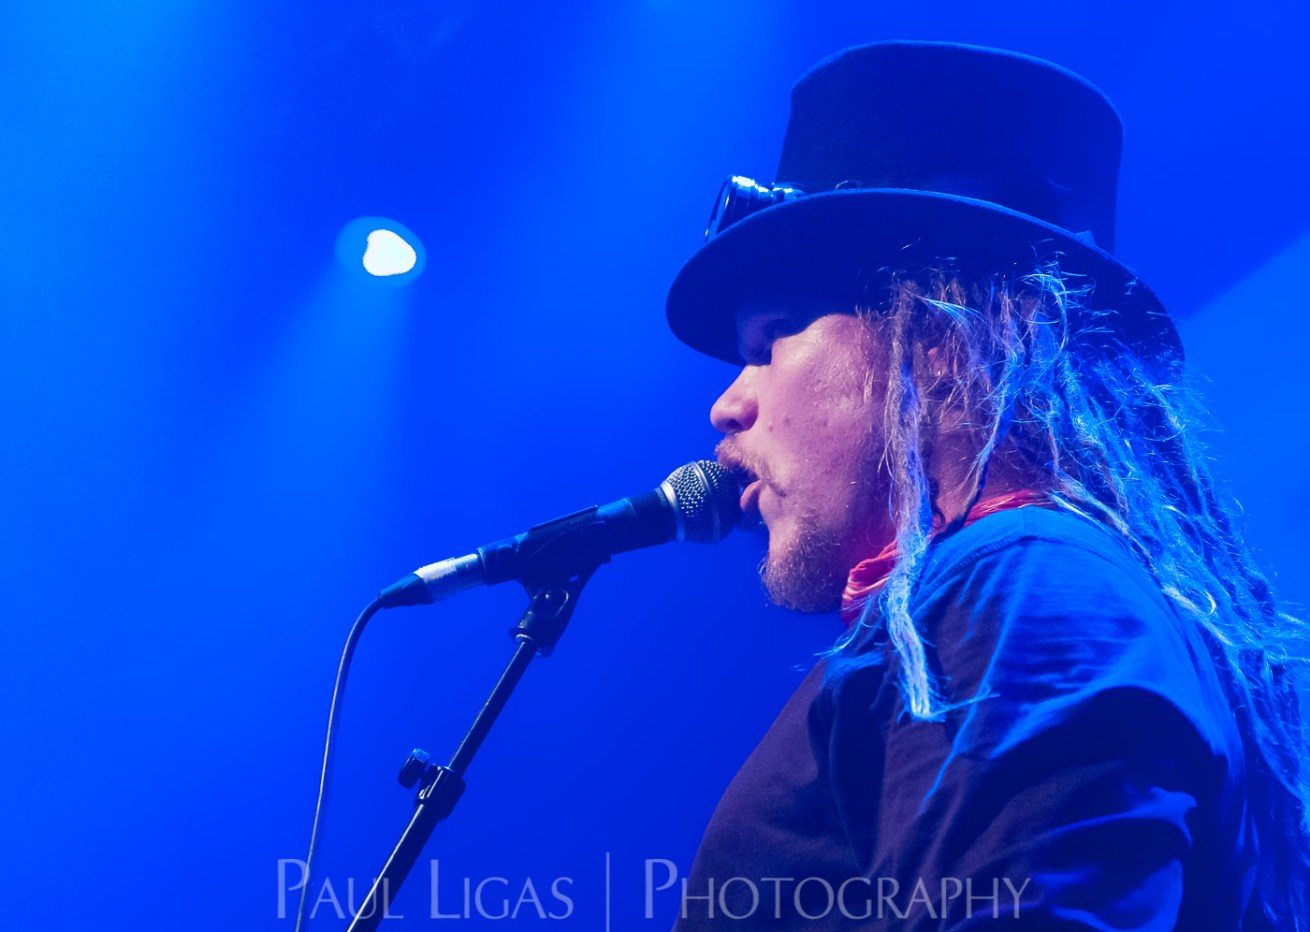 Steampunk Yule Ball 2014, event photographer photography Herefordshire music concert The Mysterious Freakshow 6653